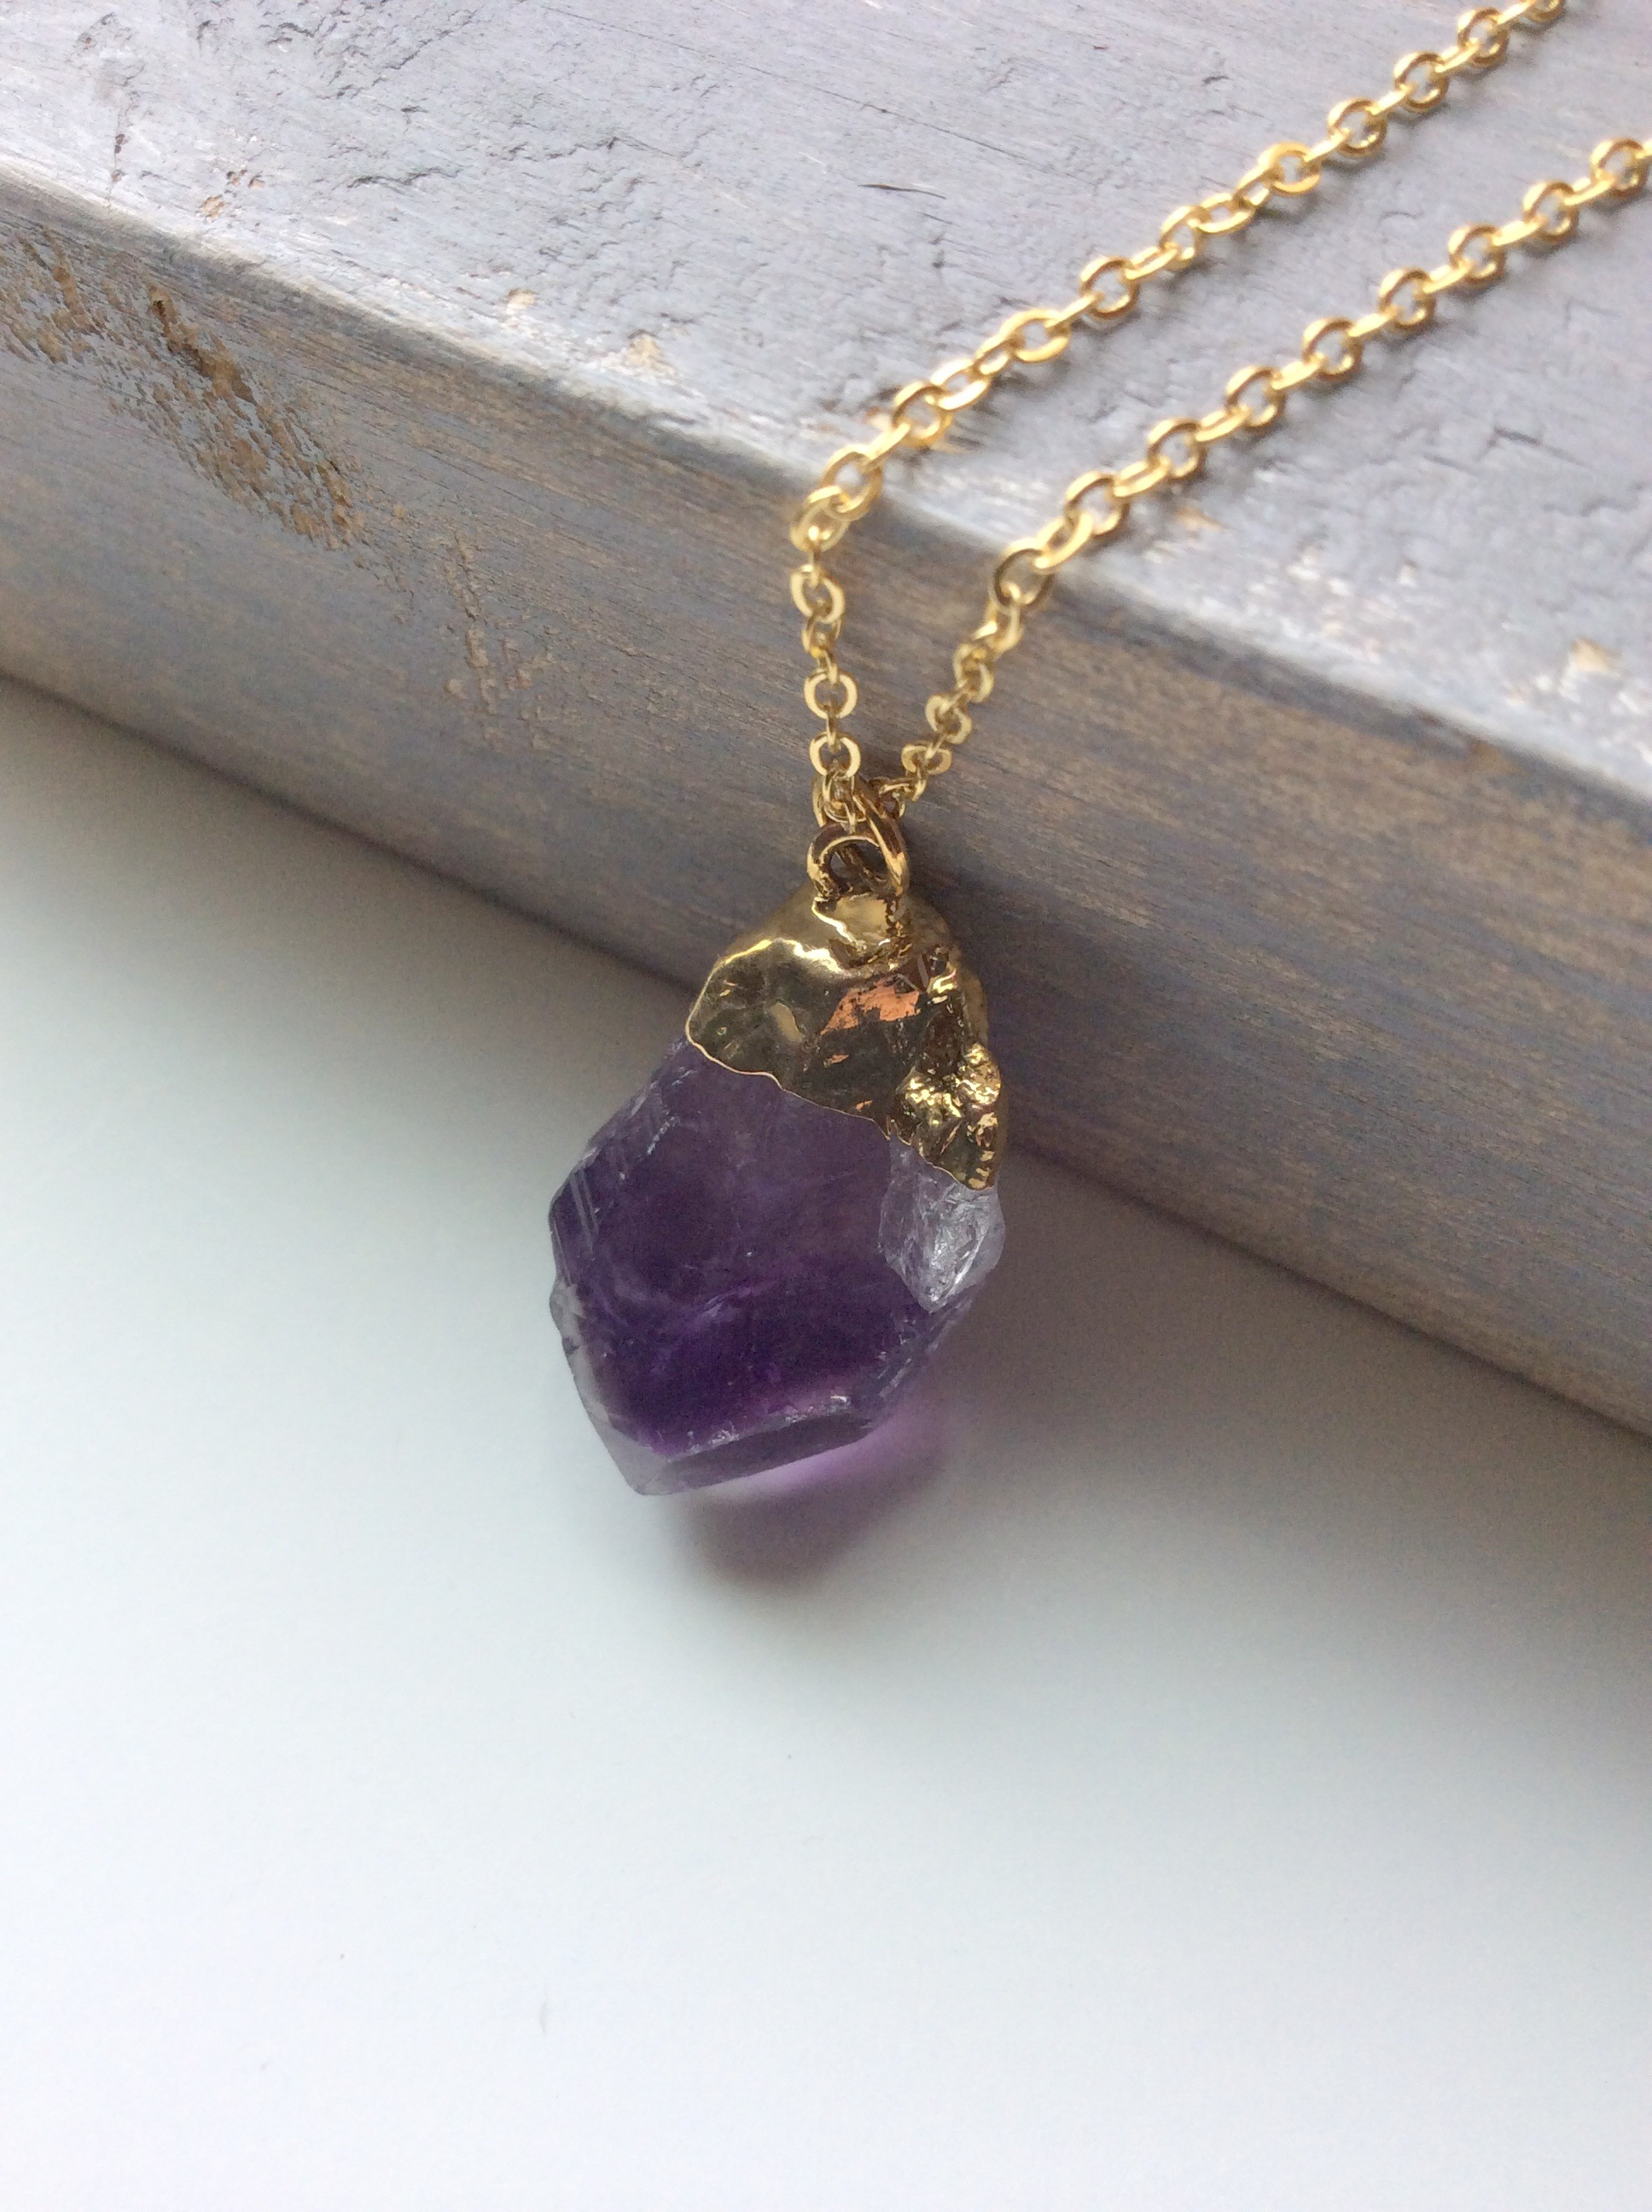 amethyst gemstone necklaces handmade silver shop rough reija raw necklace eden jewelry cut pendant